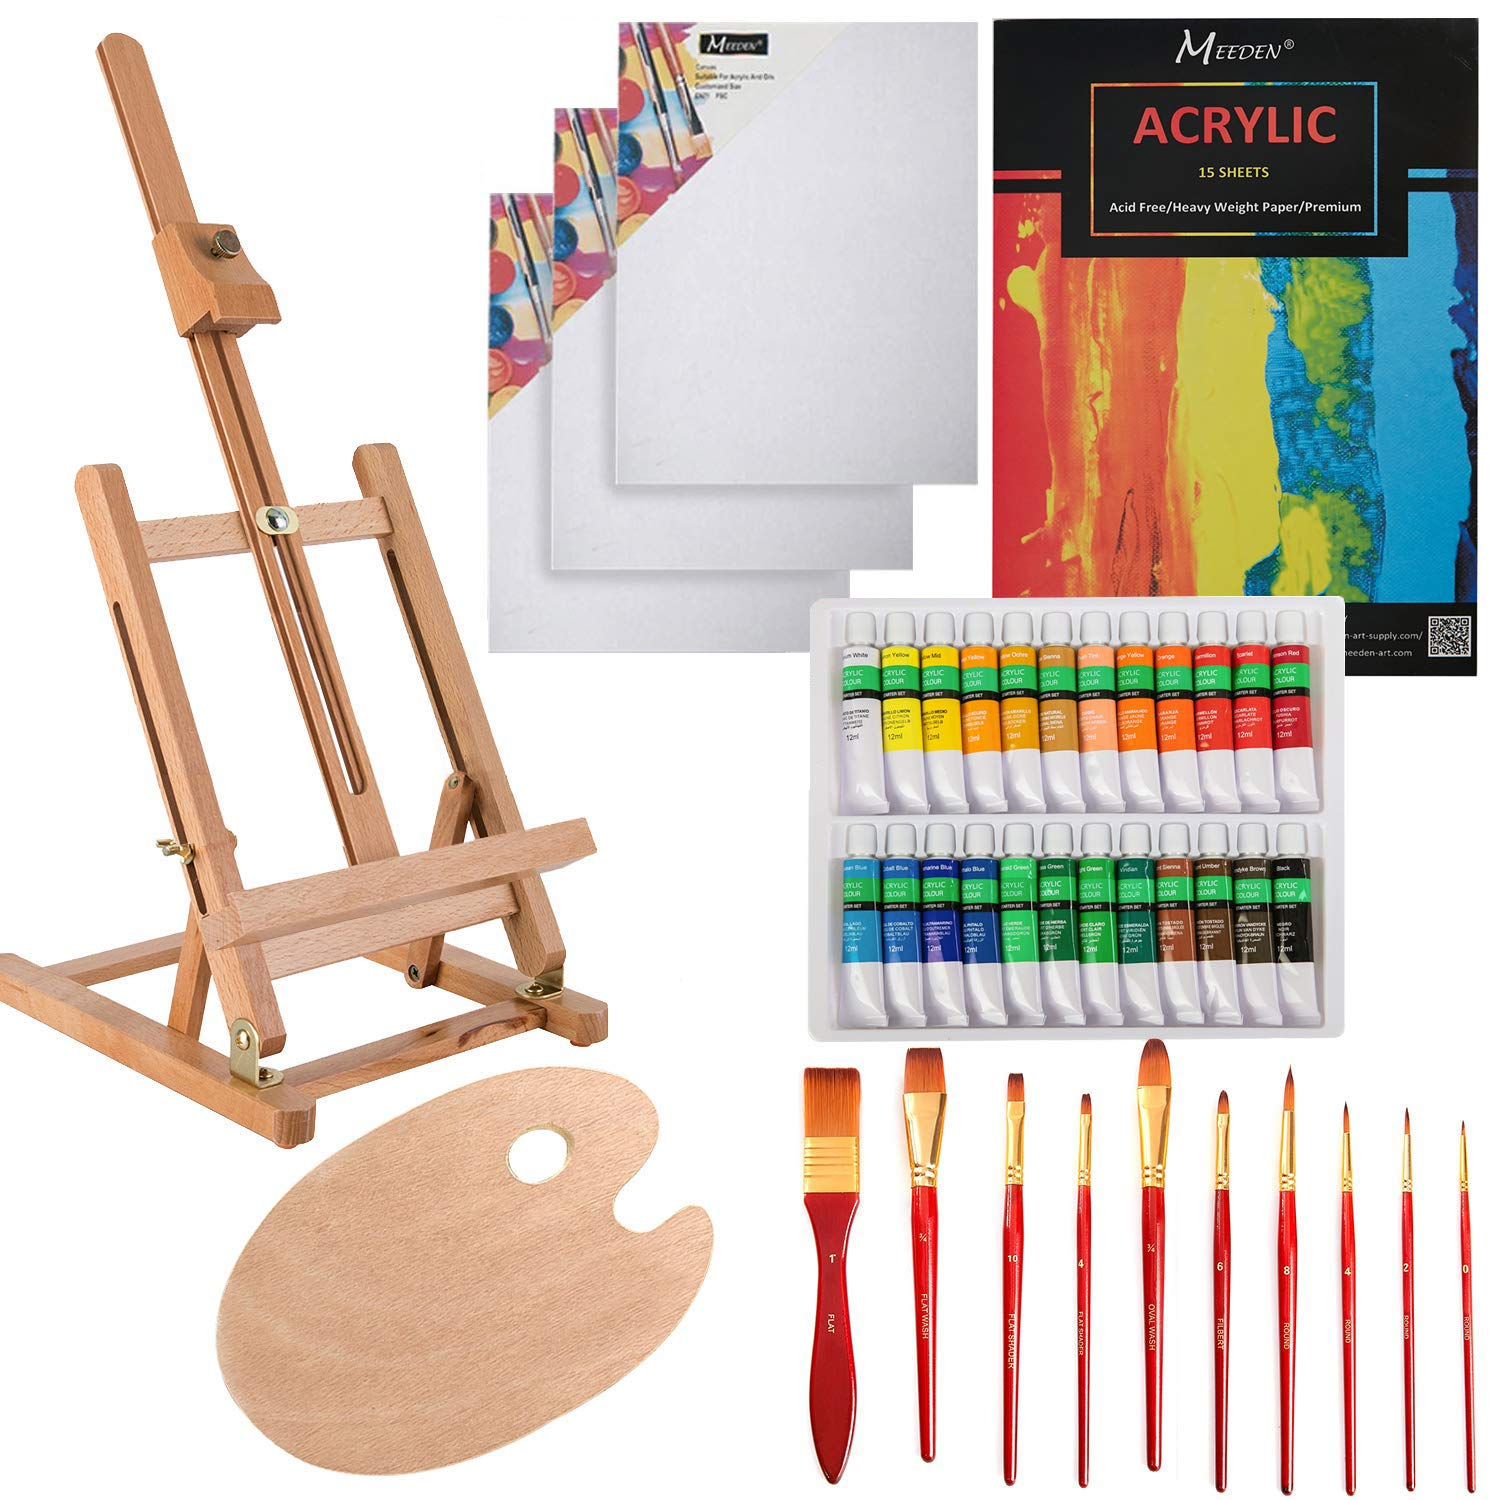 MEEDEN 40-Piece Acrylic Painting Set - Solid Beech Wood Table Easel, Canvas Panels, Acrylic Paintbrush Set, 24 Colors Acrylic Paint Tubes, Acrylic Pad, Wood Paint Palette, Perfect Gift for Kids by MEEDEN